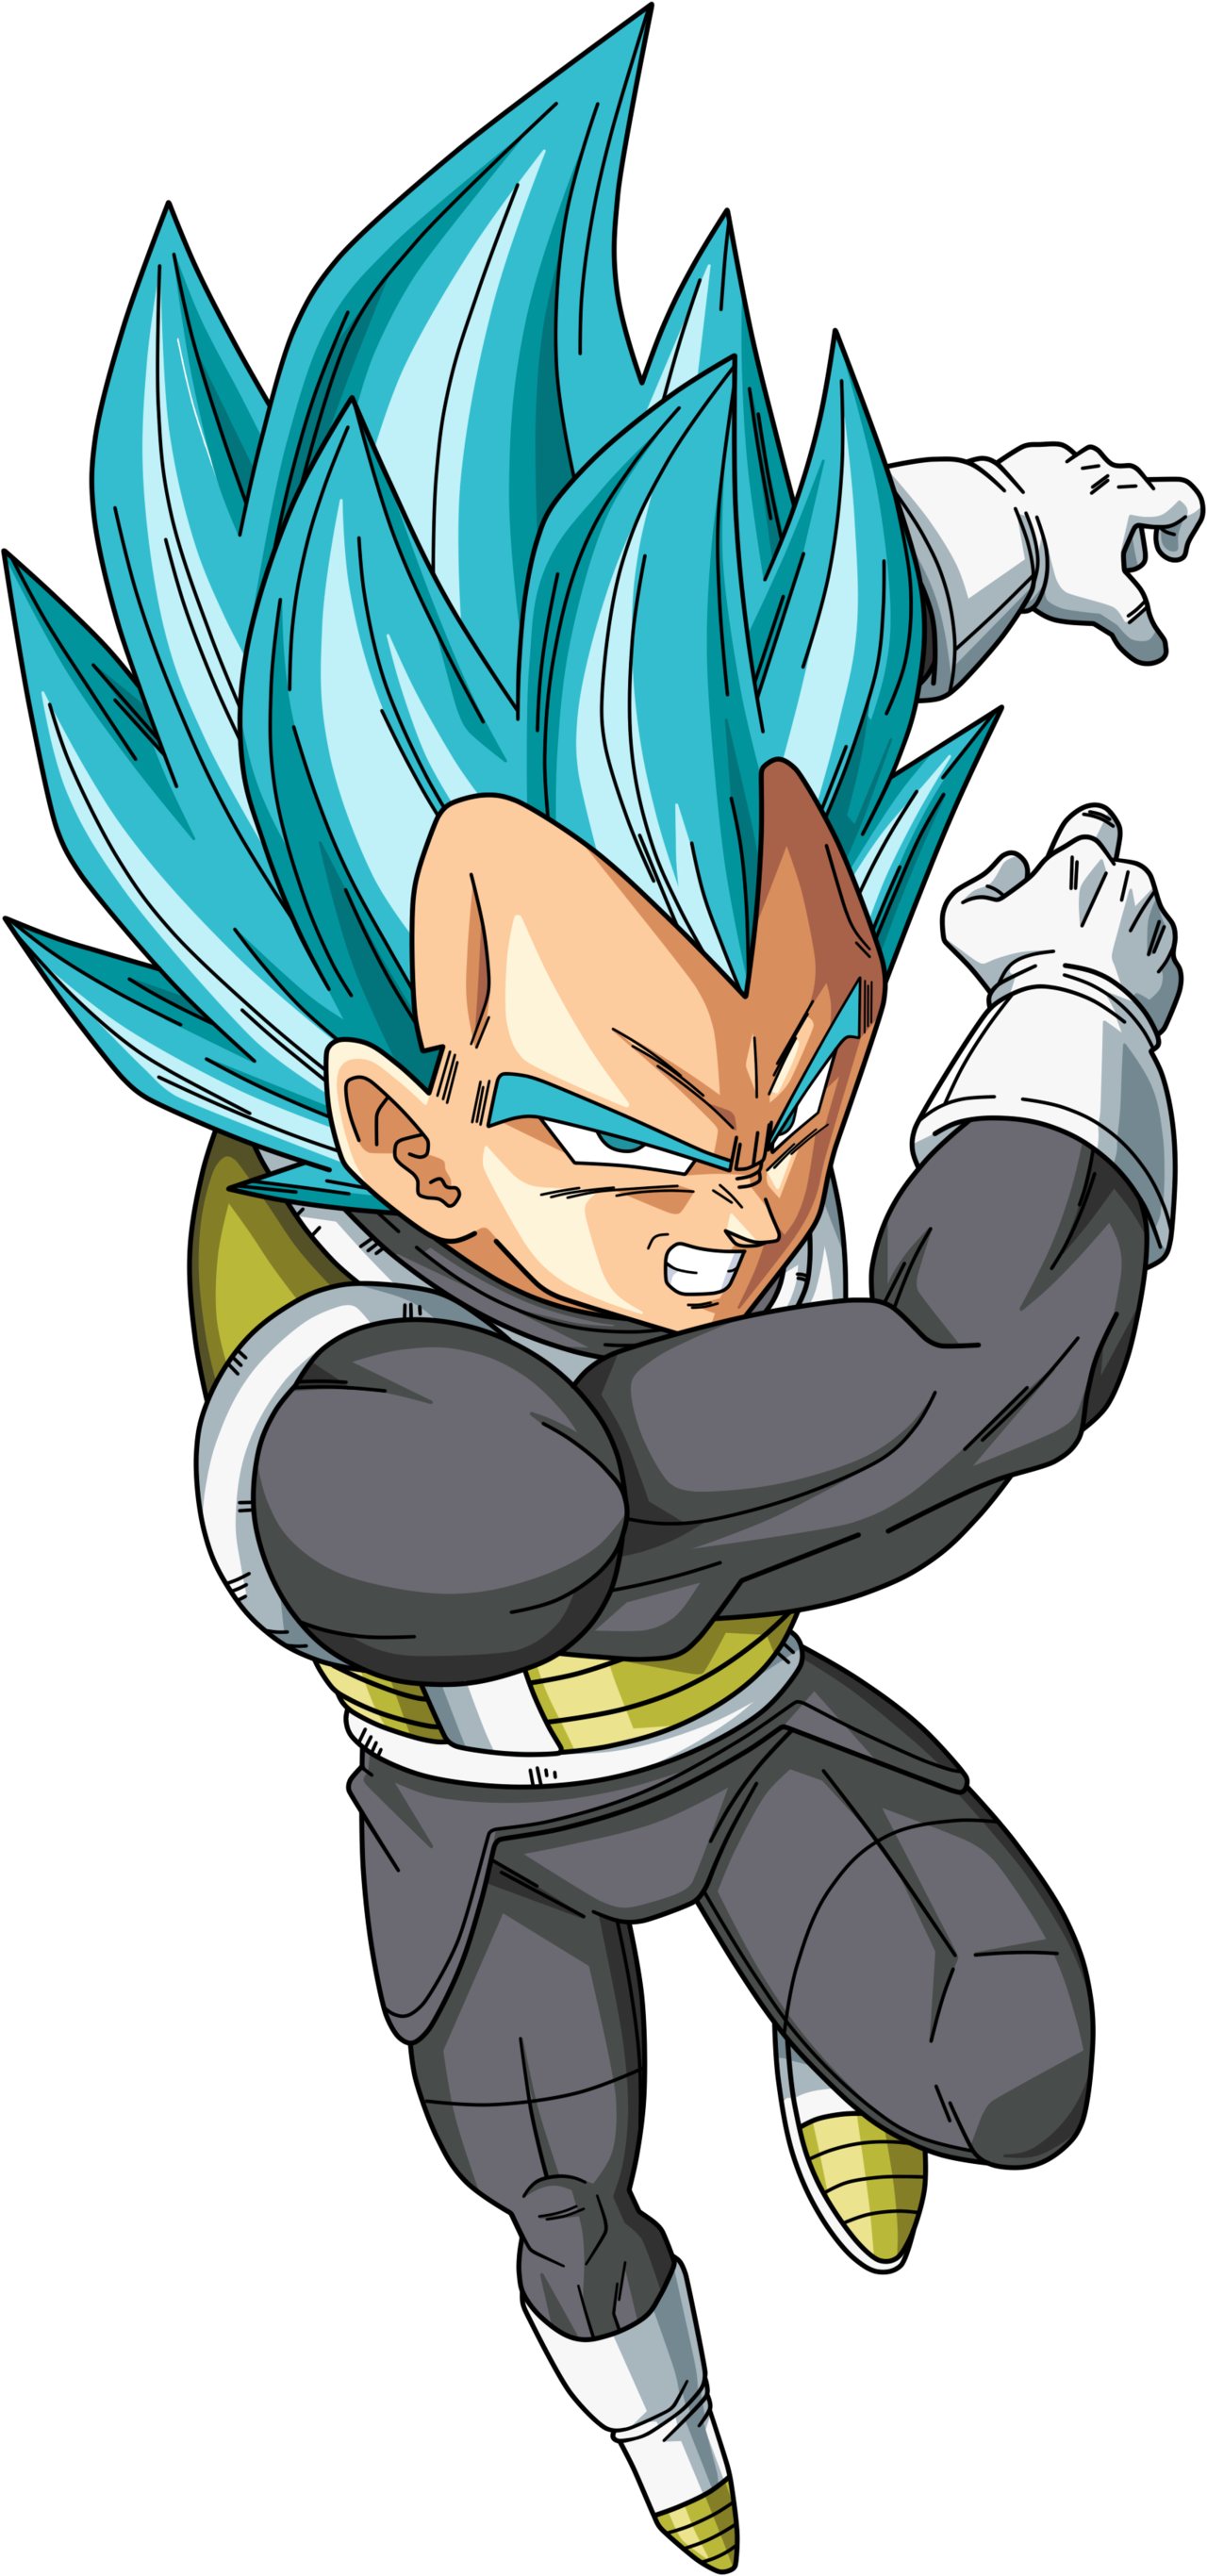 Vegeta super saiyan god png. By dark crawler deviantart